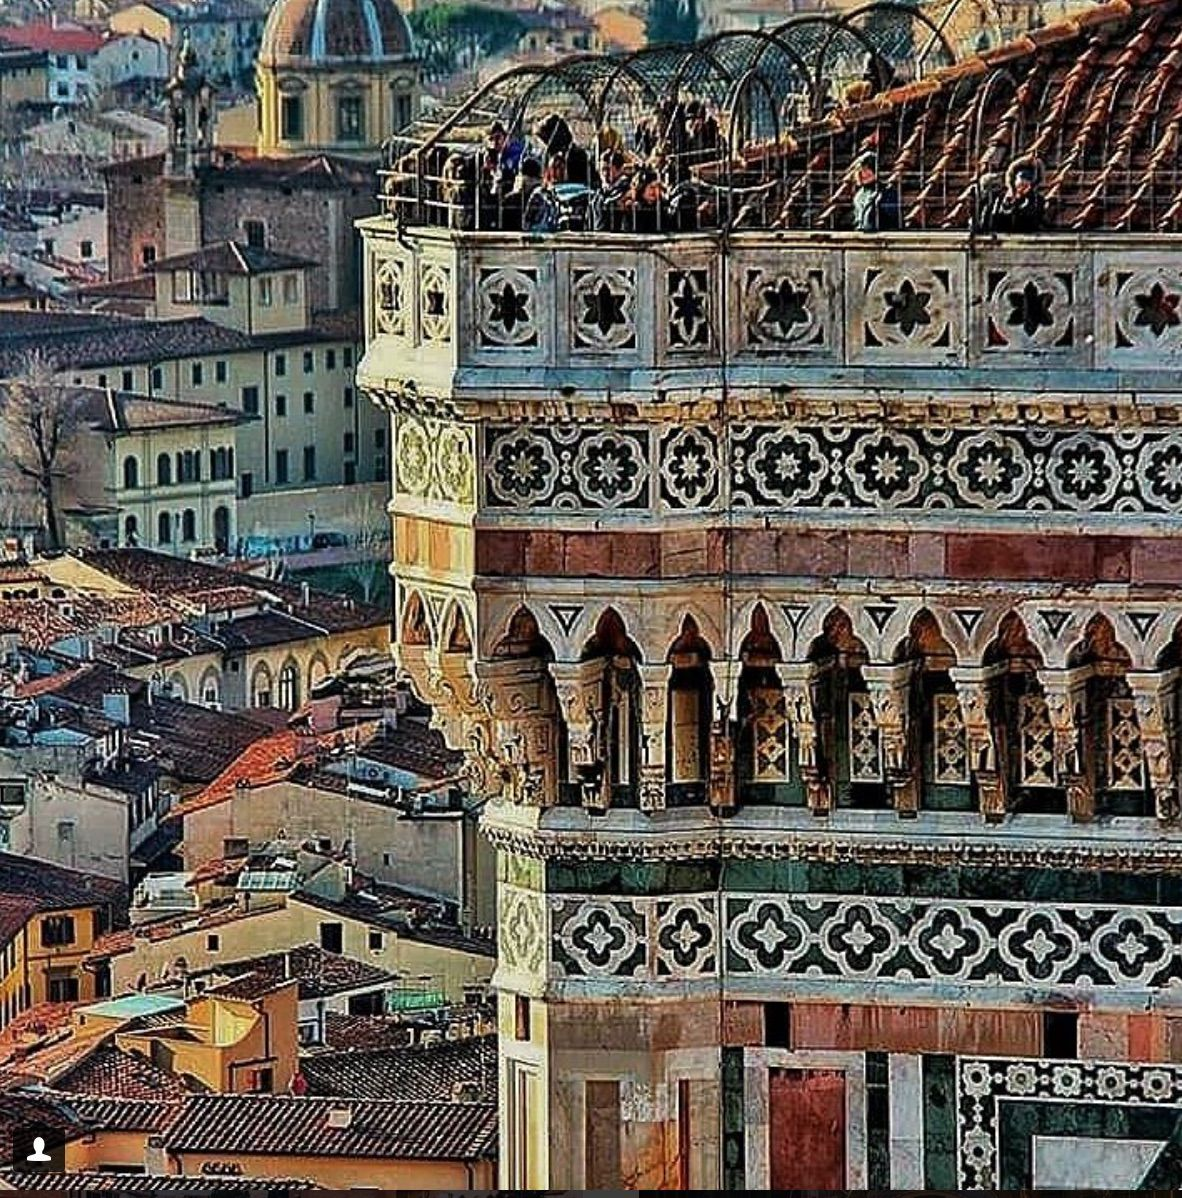 Giottos bell tower in florence florence italy visit